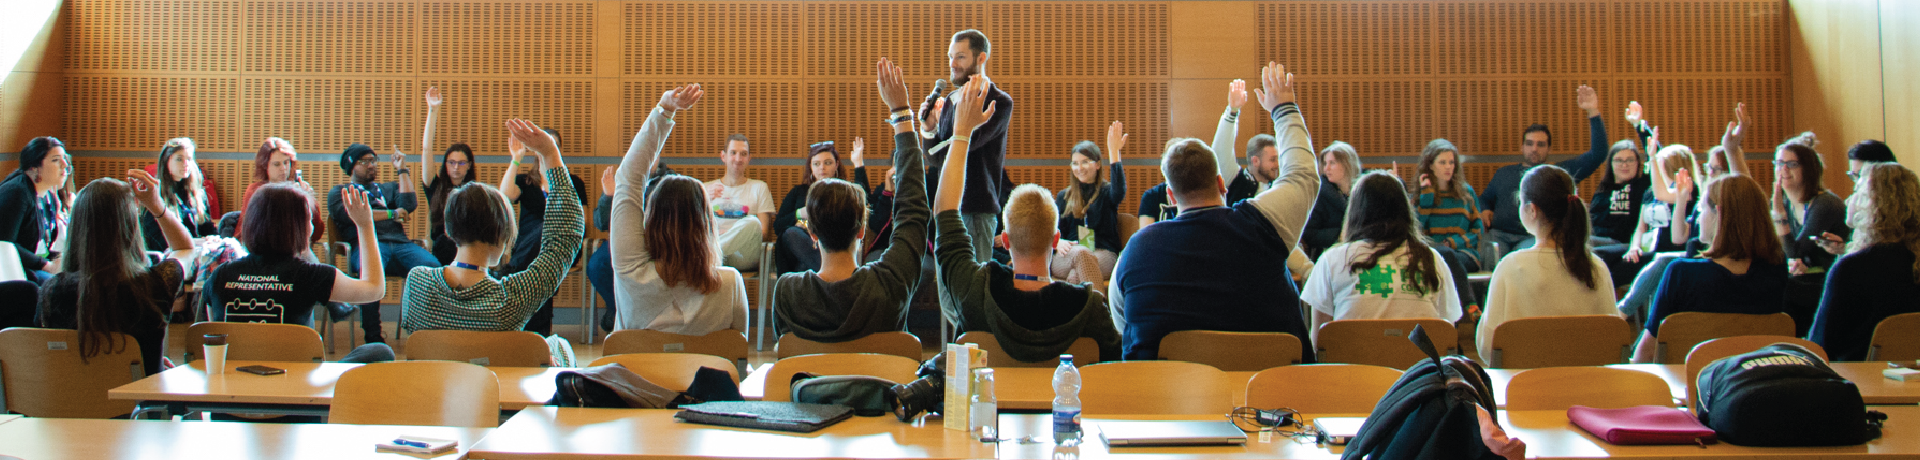 Students raising hands during a workshop